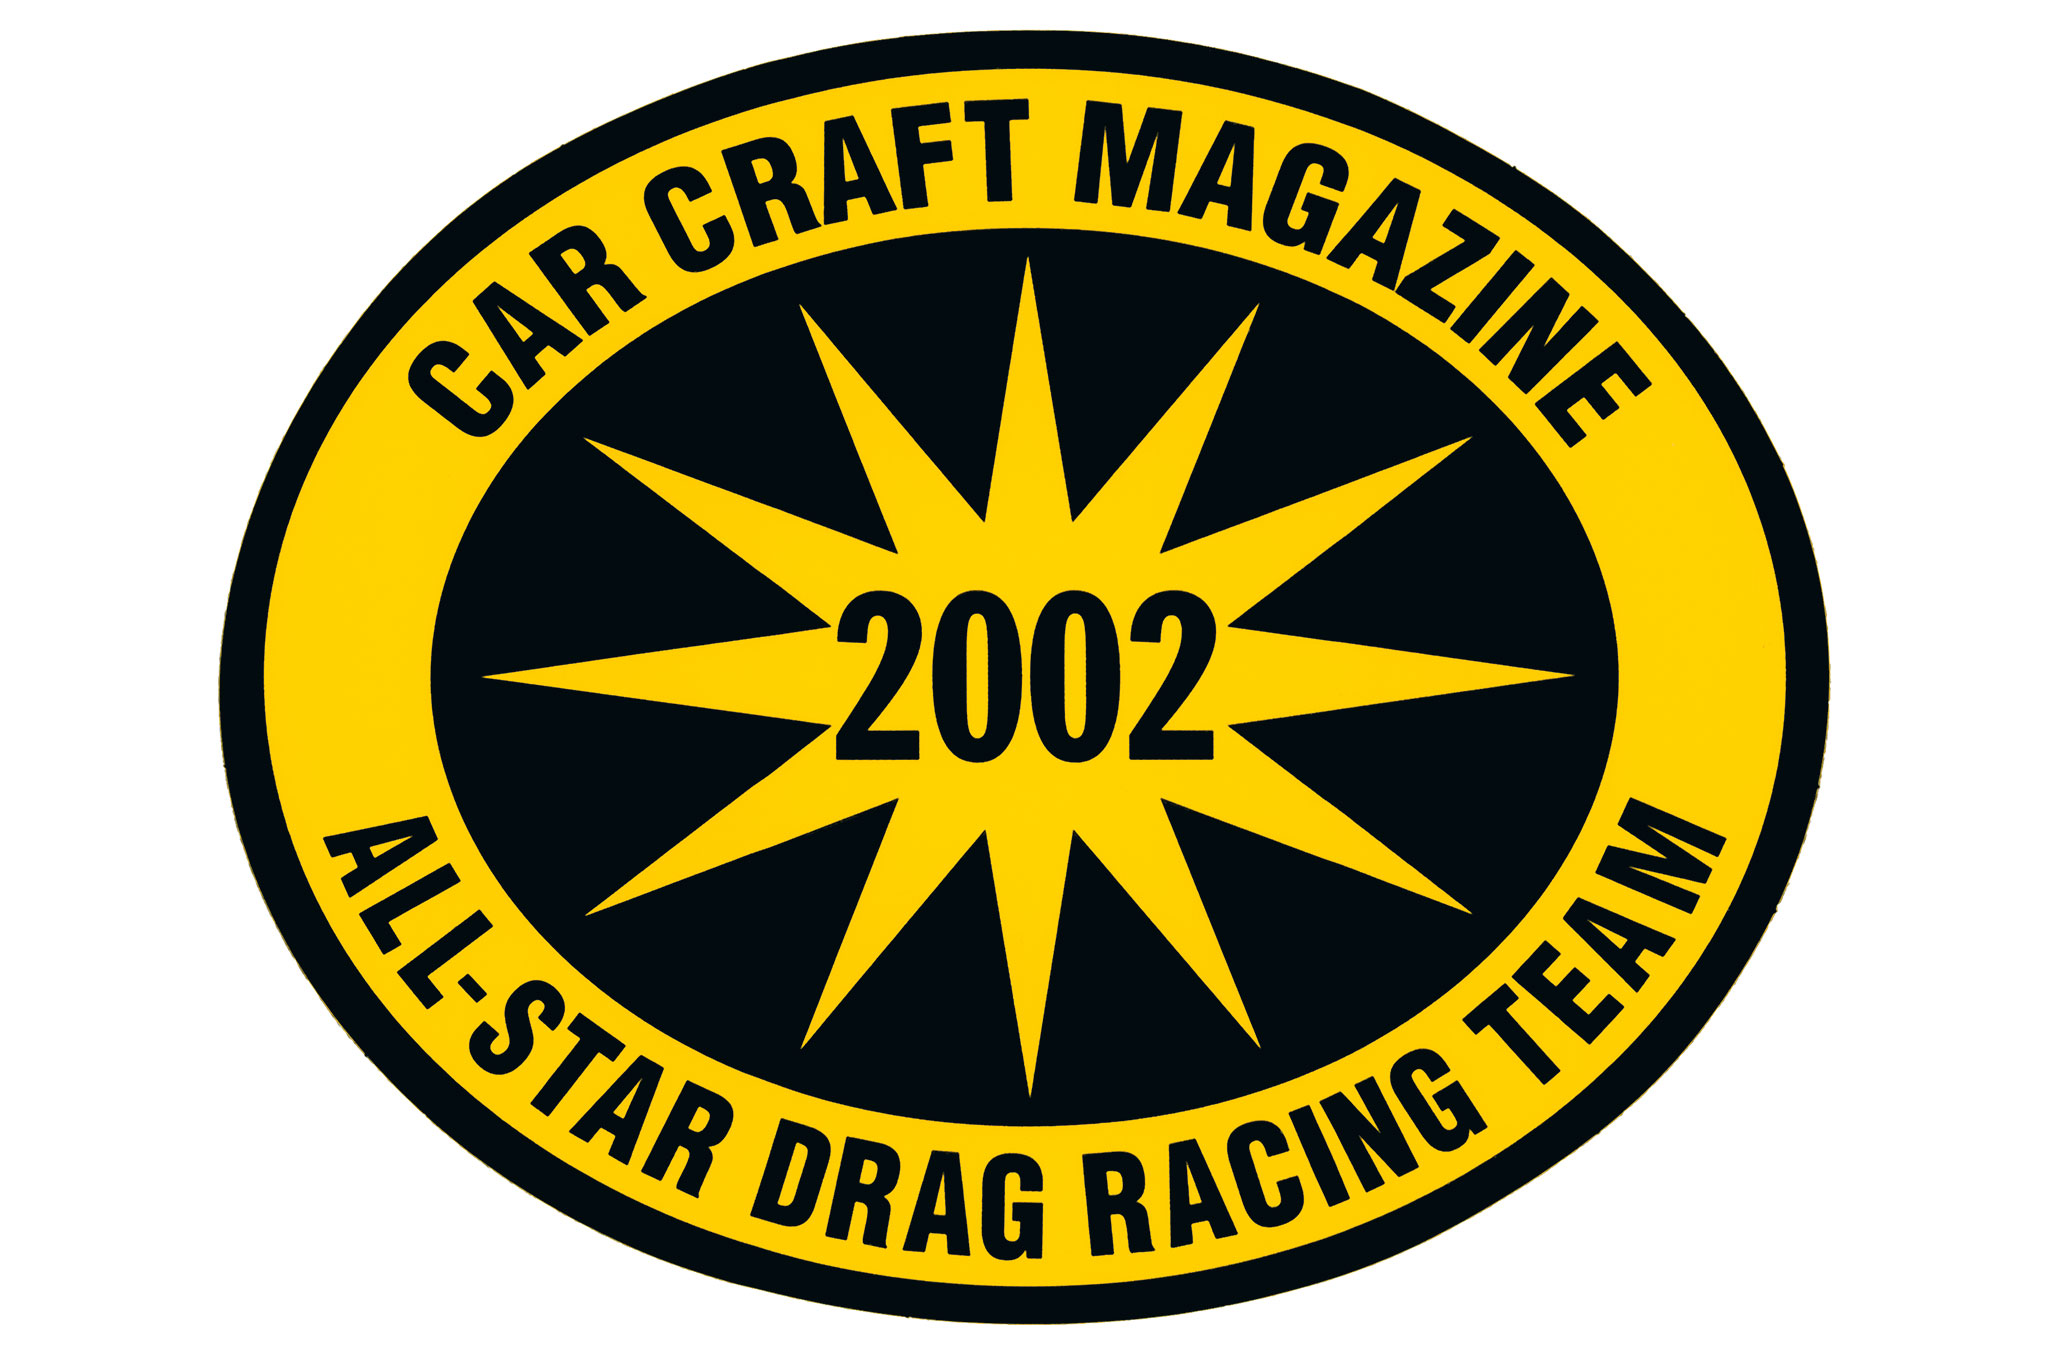 Amid the perennial change that was the All-Star Drag Racing Team, one icon that never changed (except for the year) was the logo. This decal on your race car was always a standout.